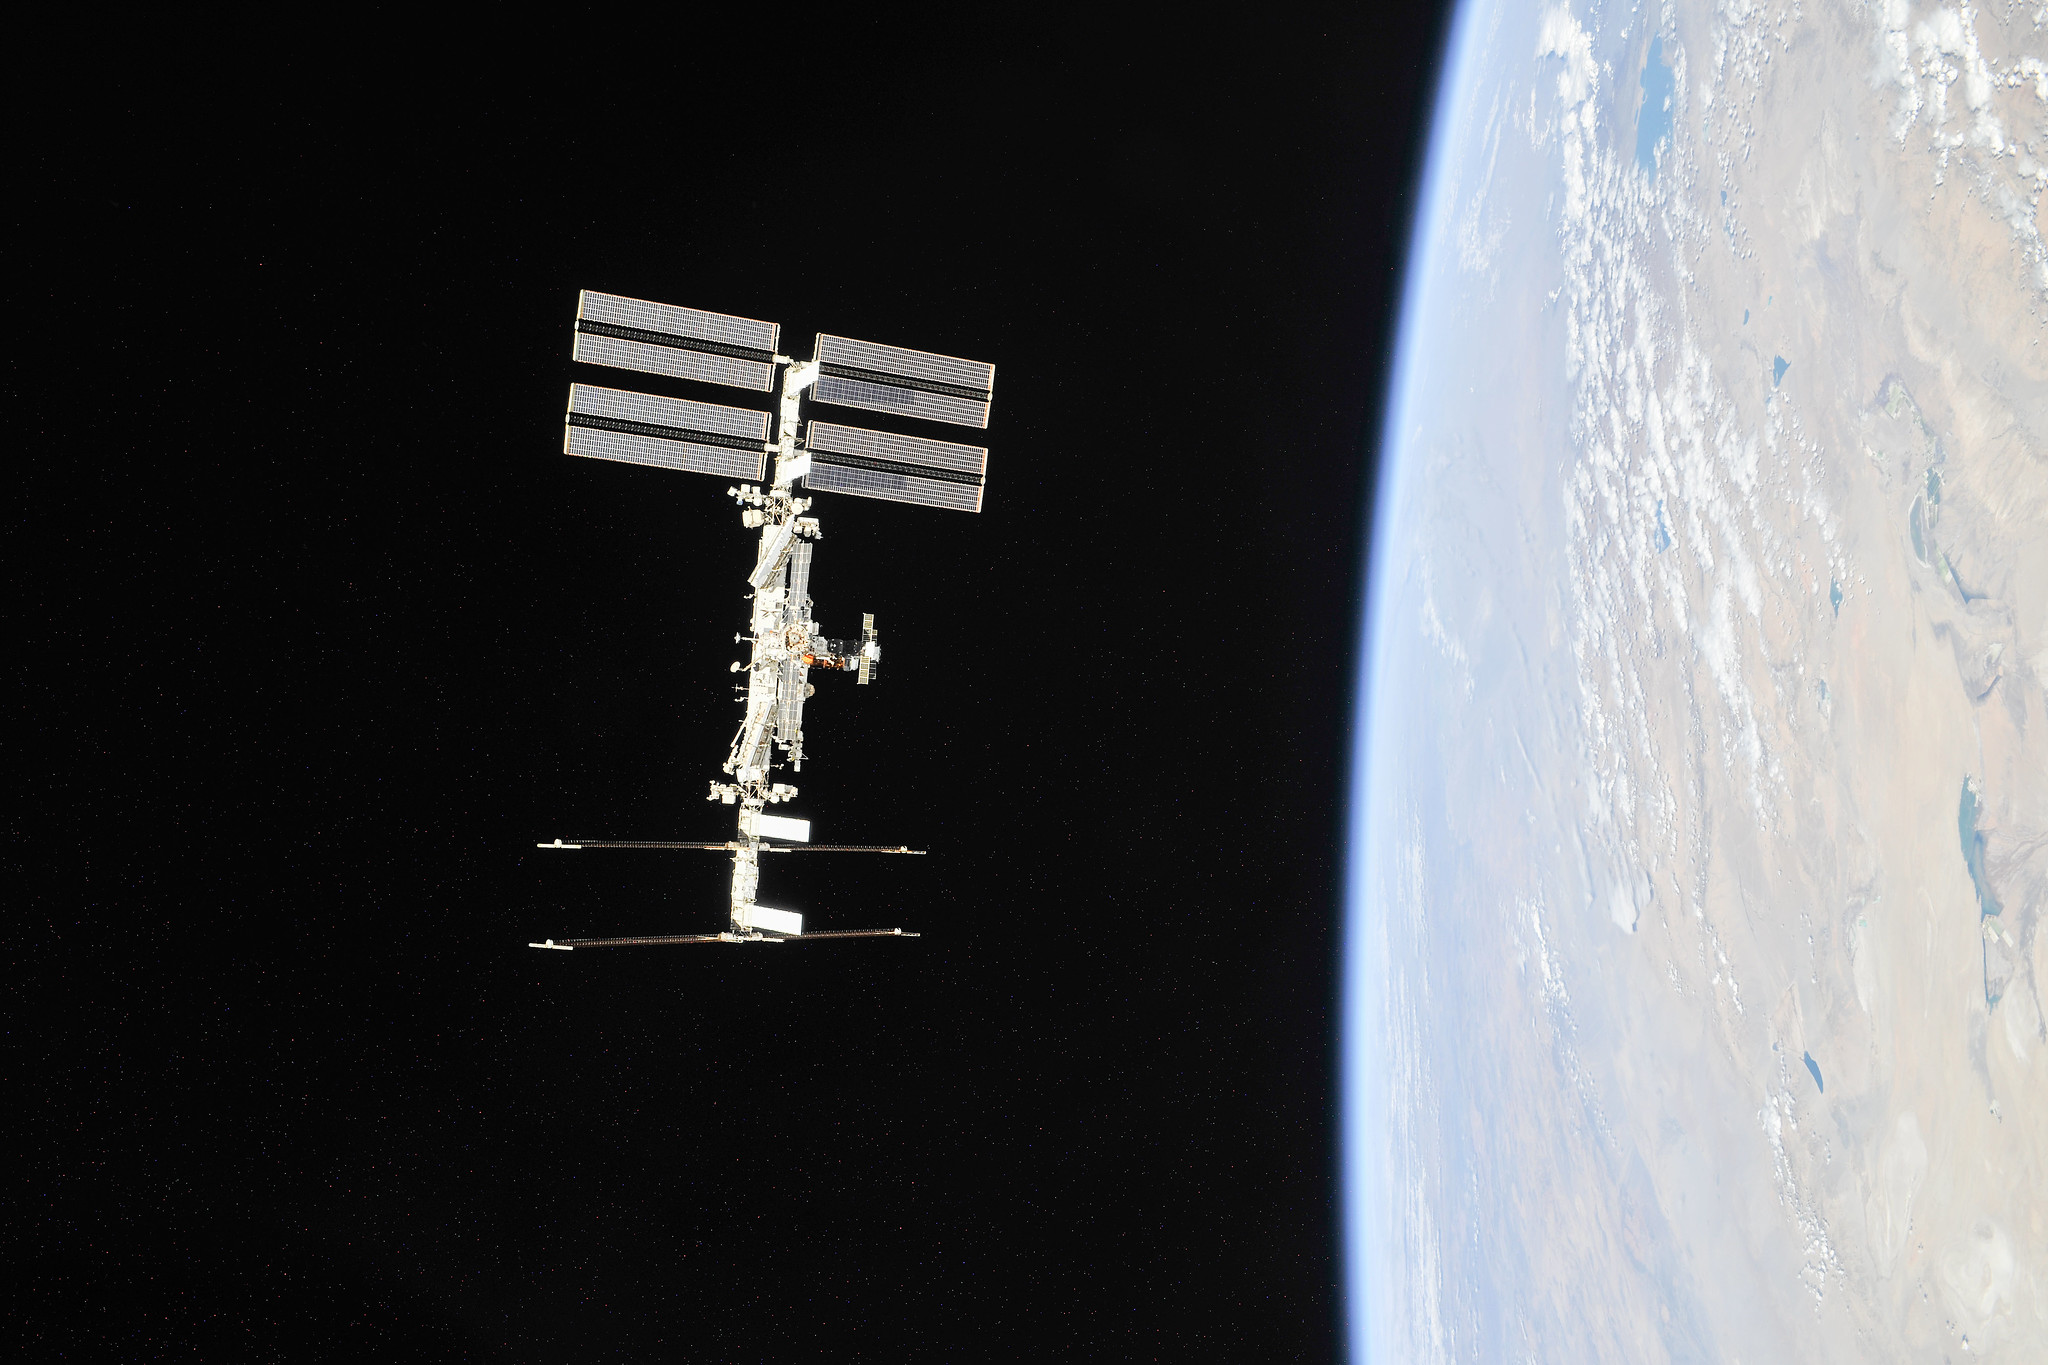 NASA, Axiom Agree to First Private Astronaut Mission on Space Station - NASA